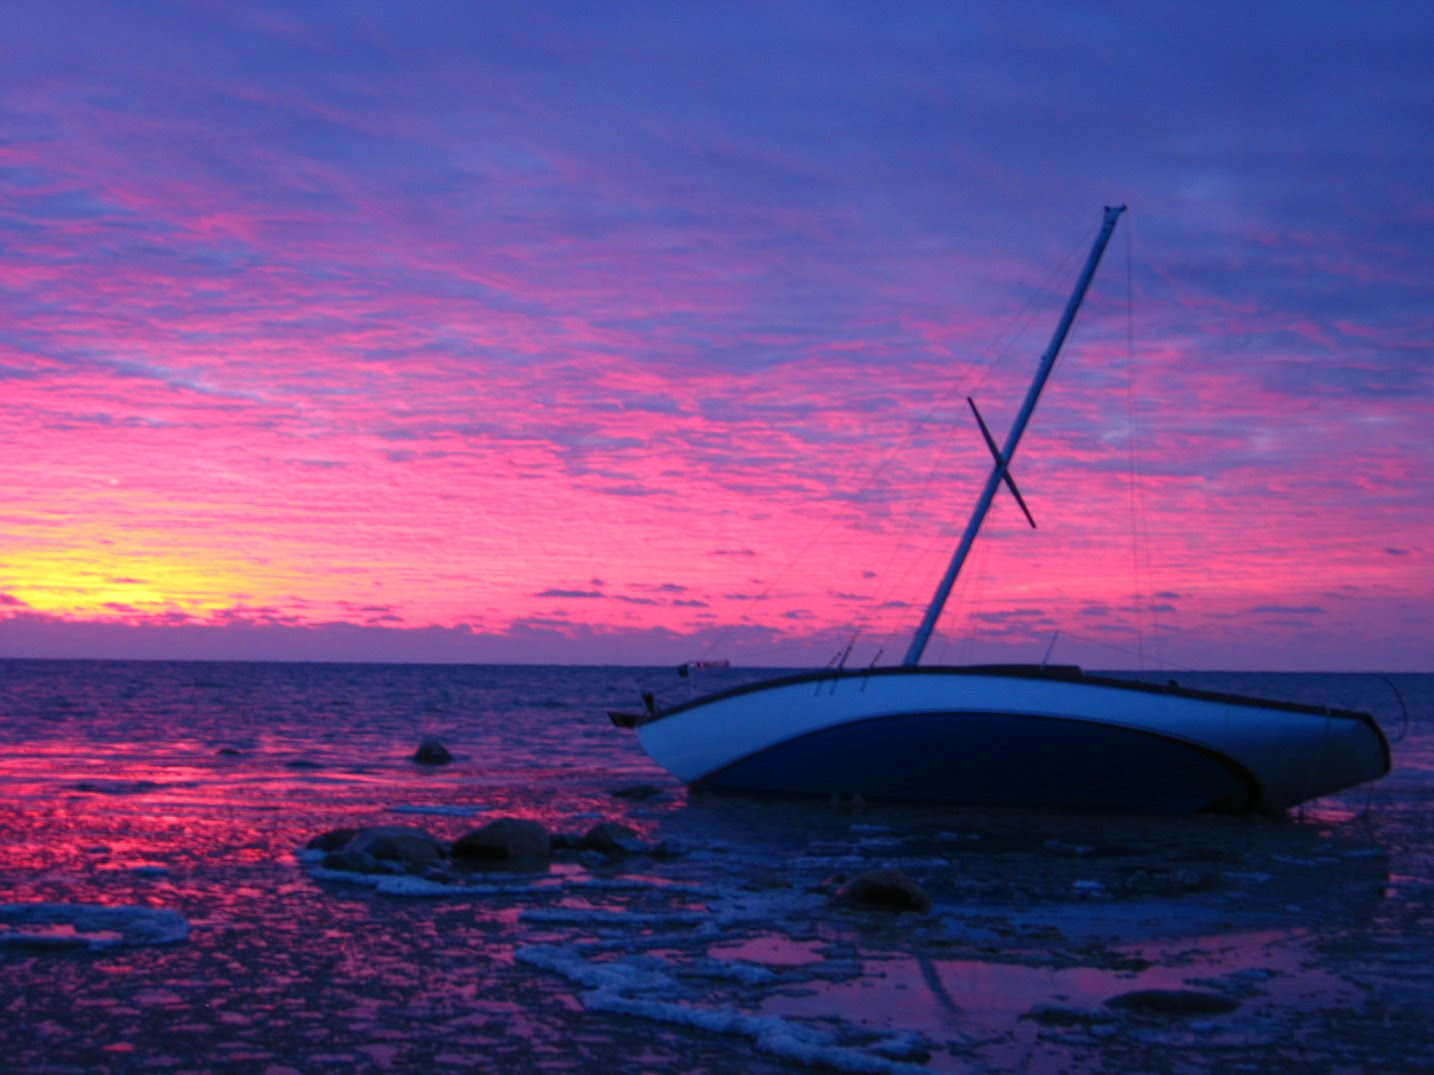 Milwaukee grounded sailboat at sunrise - 12-01-2007 - soul-amp.com